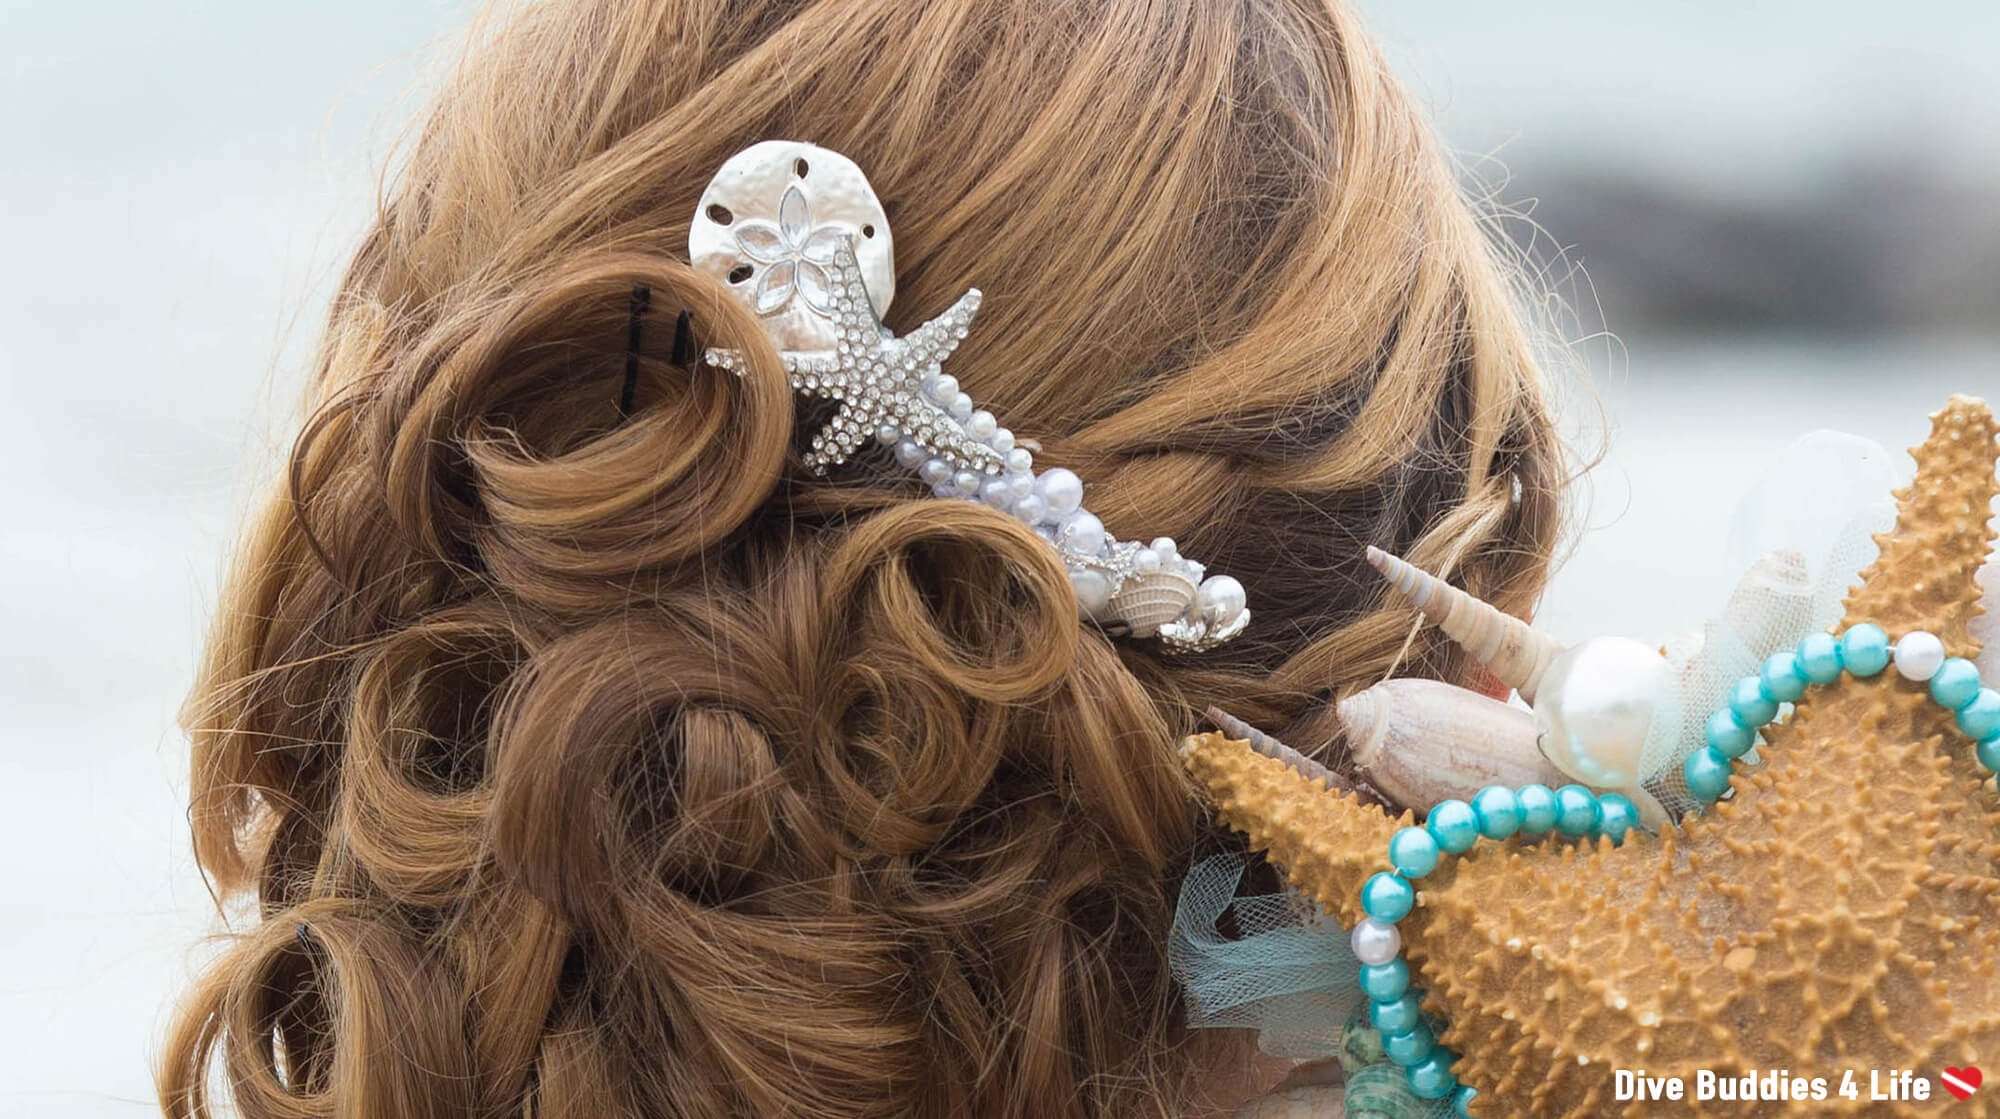 Ali's Sea Star And Sea Shell Wedding Bridal Hair Piece For A Scuba Themed Wedding